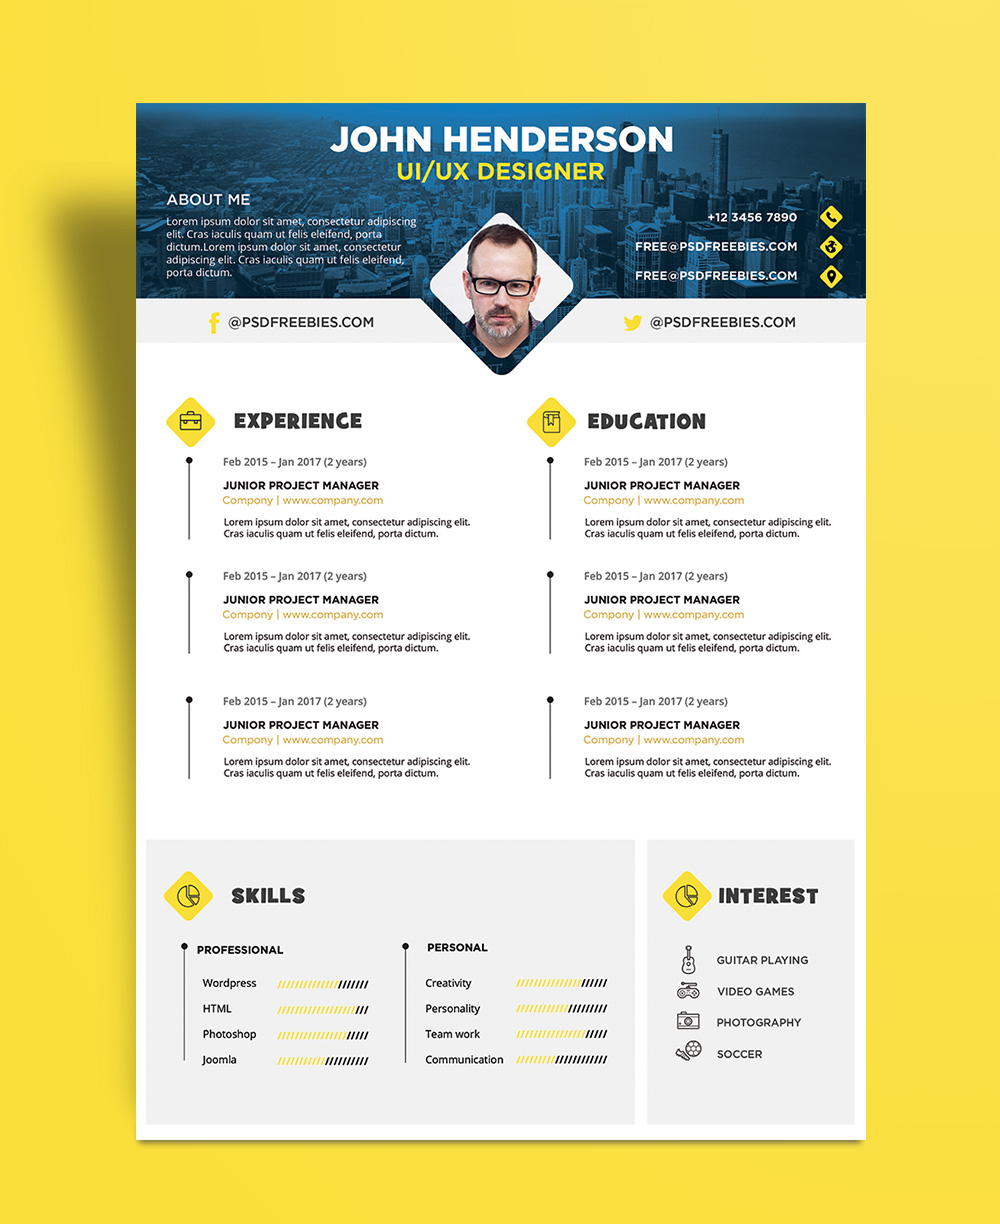 Free Professional Cvresume And Cover Letter Psd Templates Free Creative Resume Cv Design Template For Ui Ux